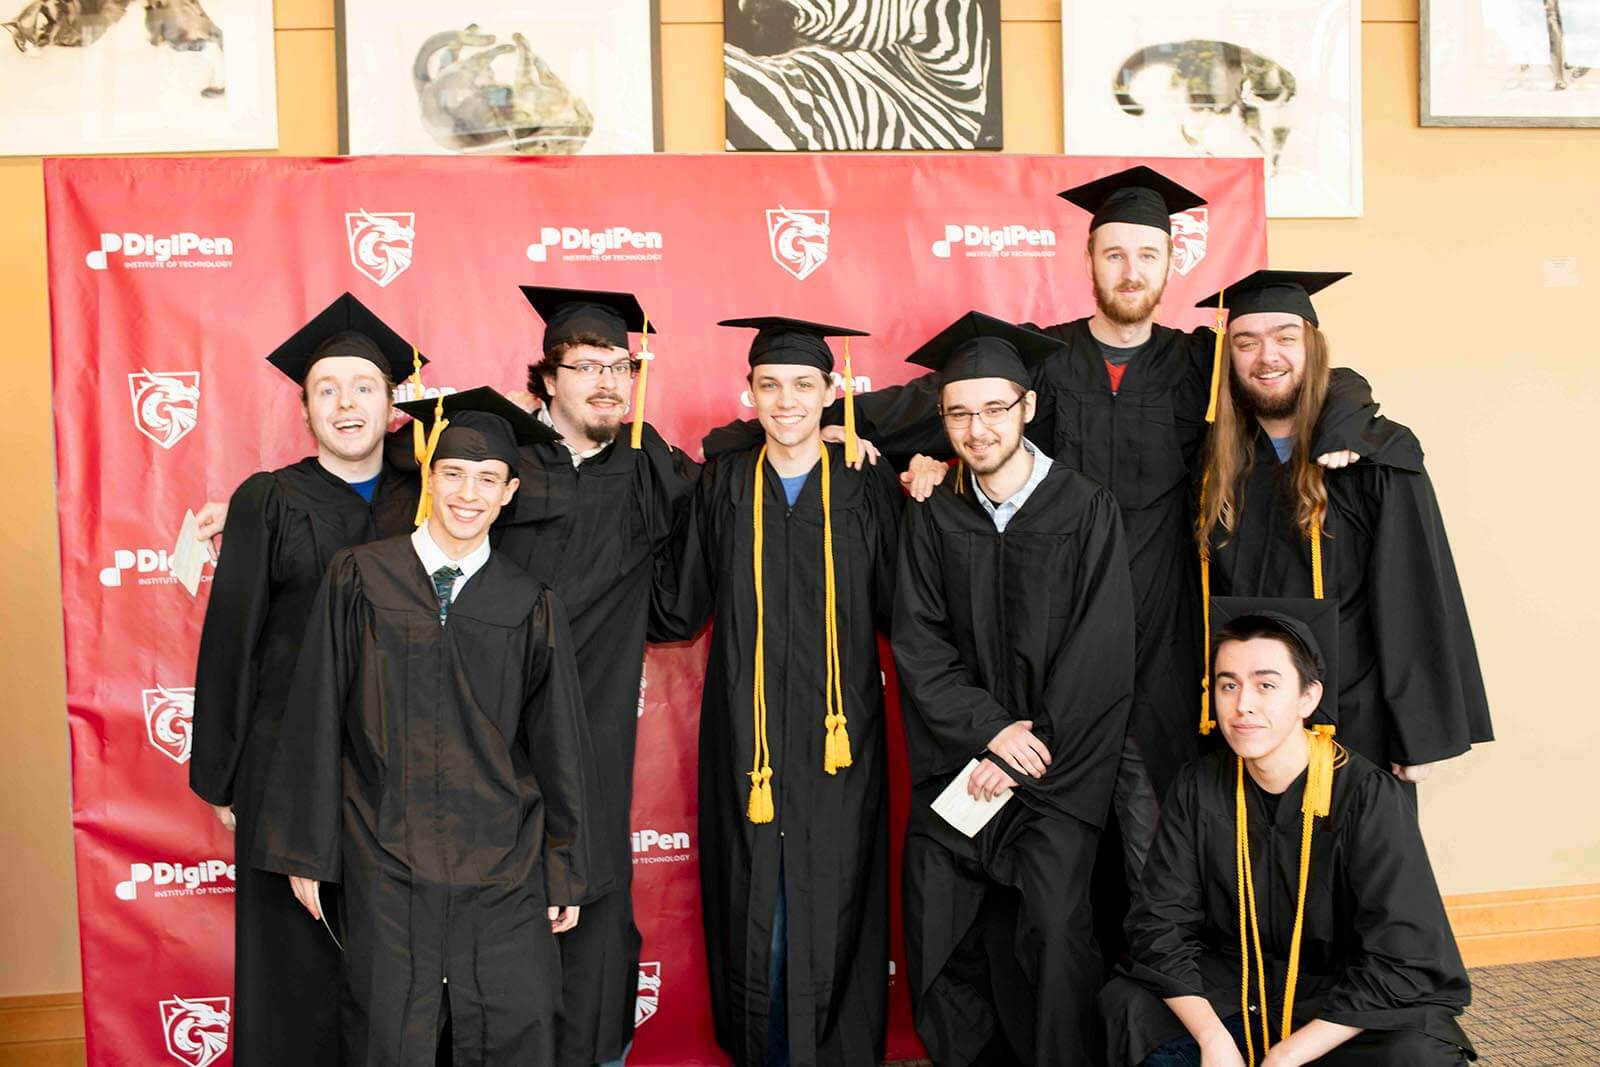 A group of students in graduation garb pose in front of a red backdrop bearing DigiPen's logo and name.